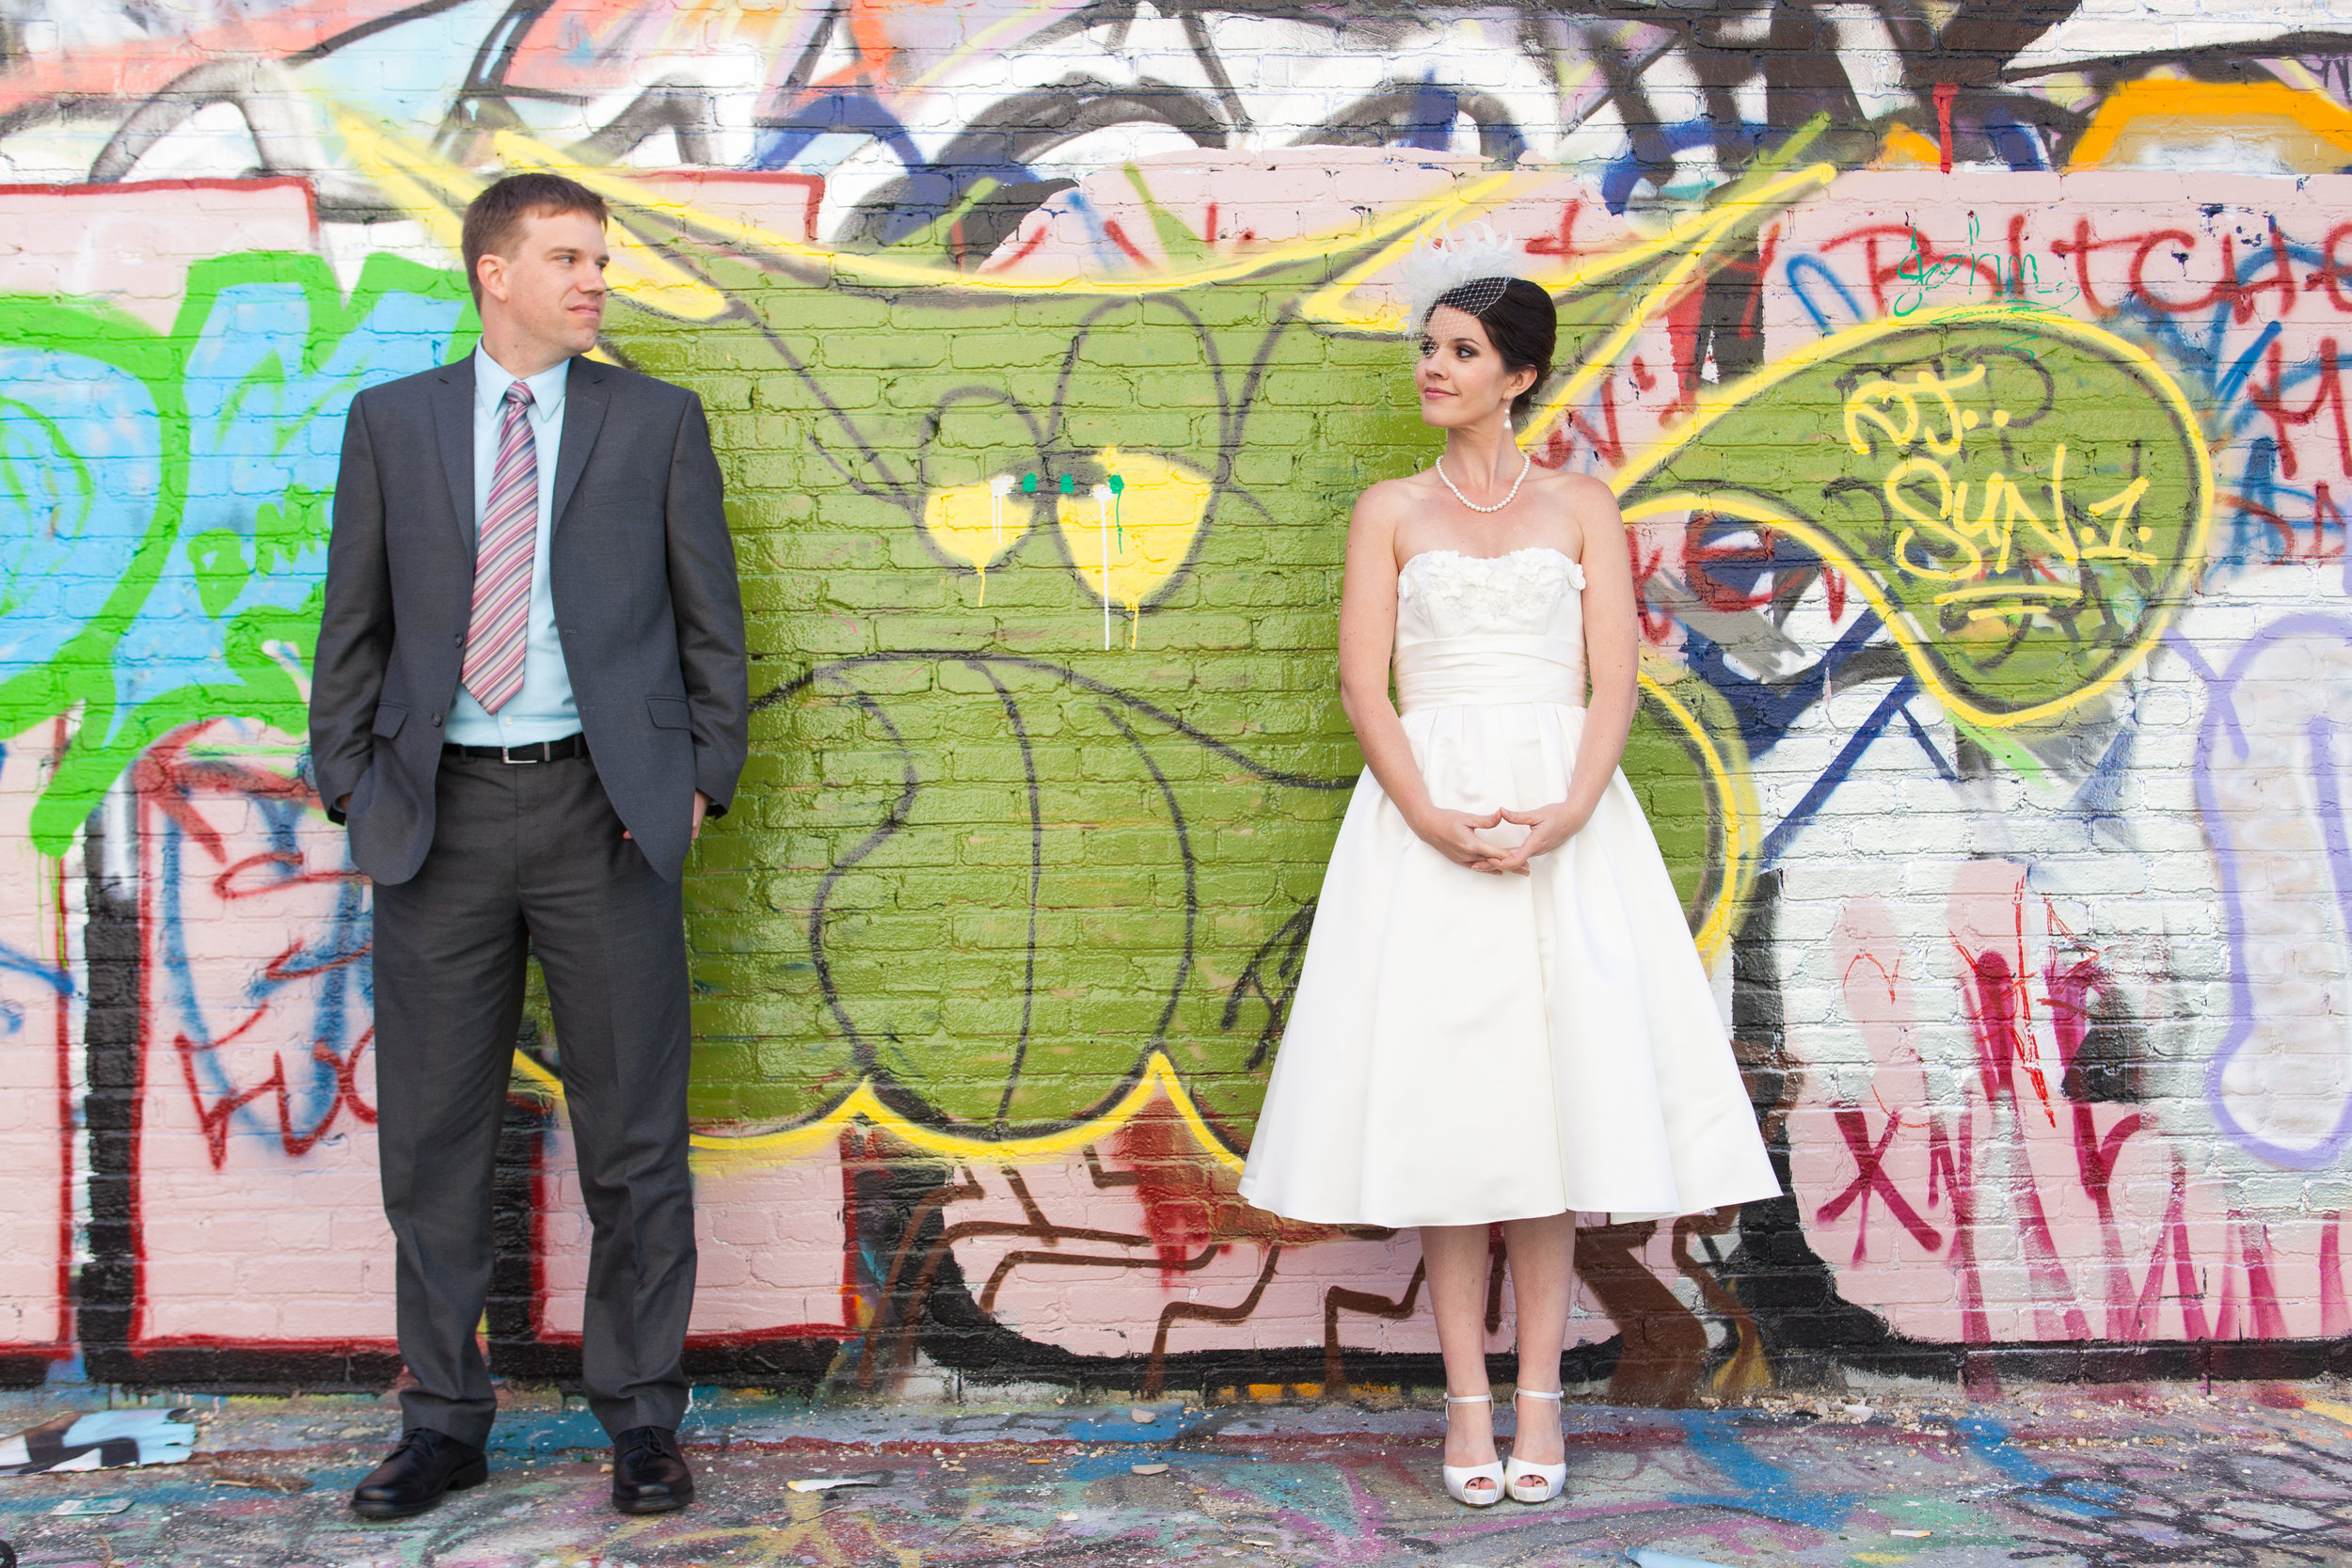 Bride & groom in front of graffiti wall